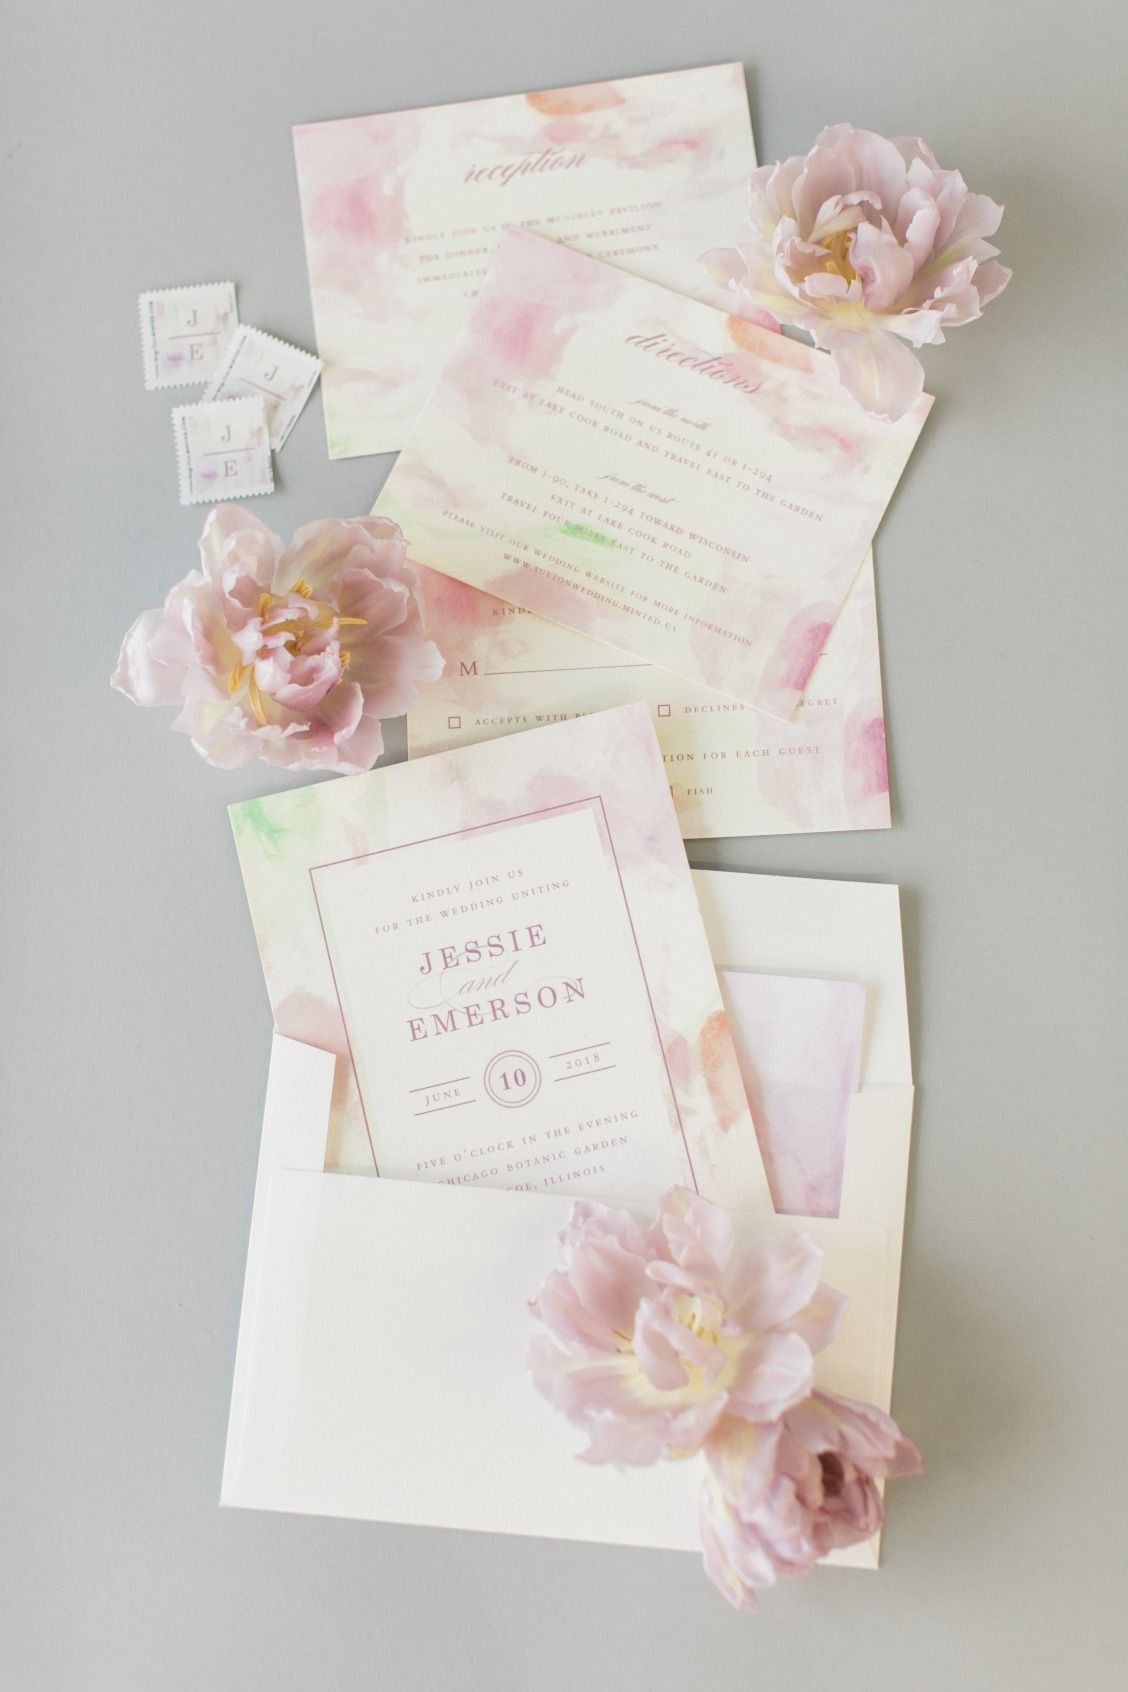 Whimsical cotton candy inspired wedding invitation by Minted artist ...